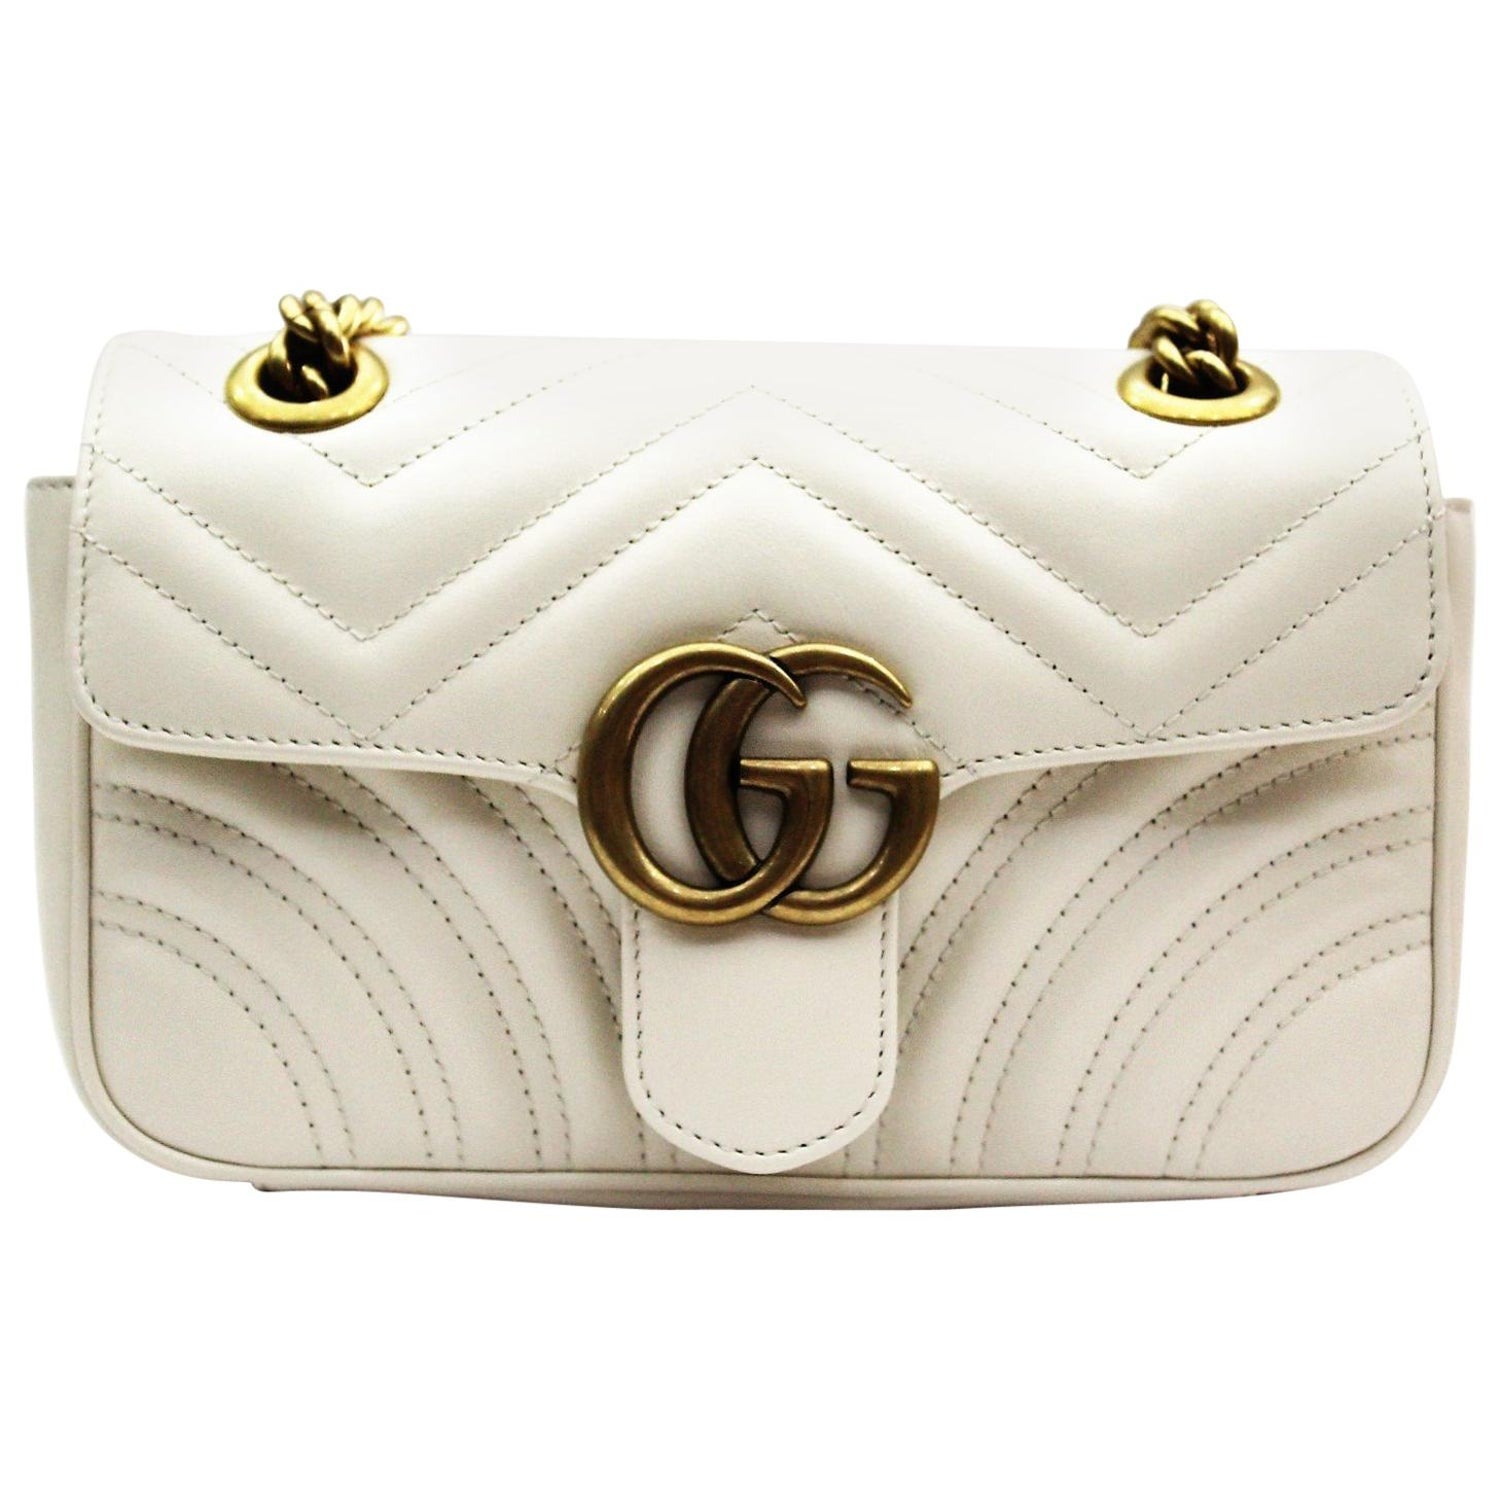 6d0a0dbf2b3 Gucci Mini Marmont White Leather Crossbody Bag at 1stdibs